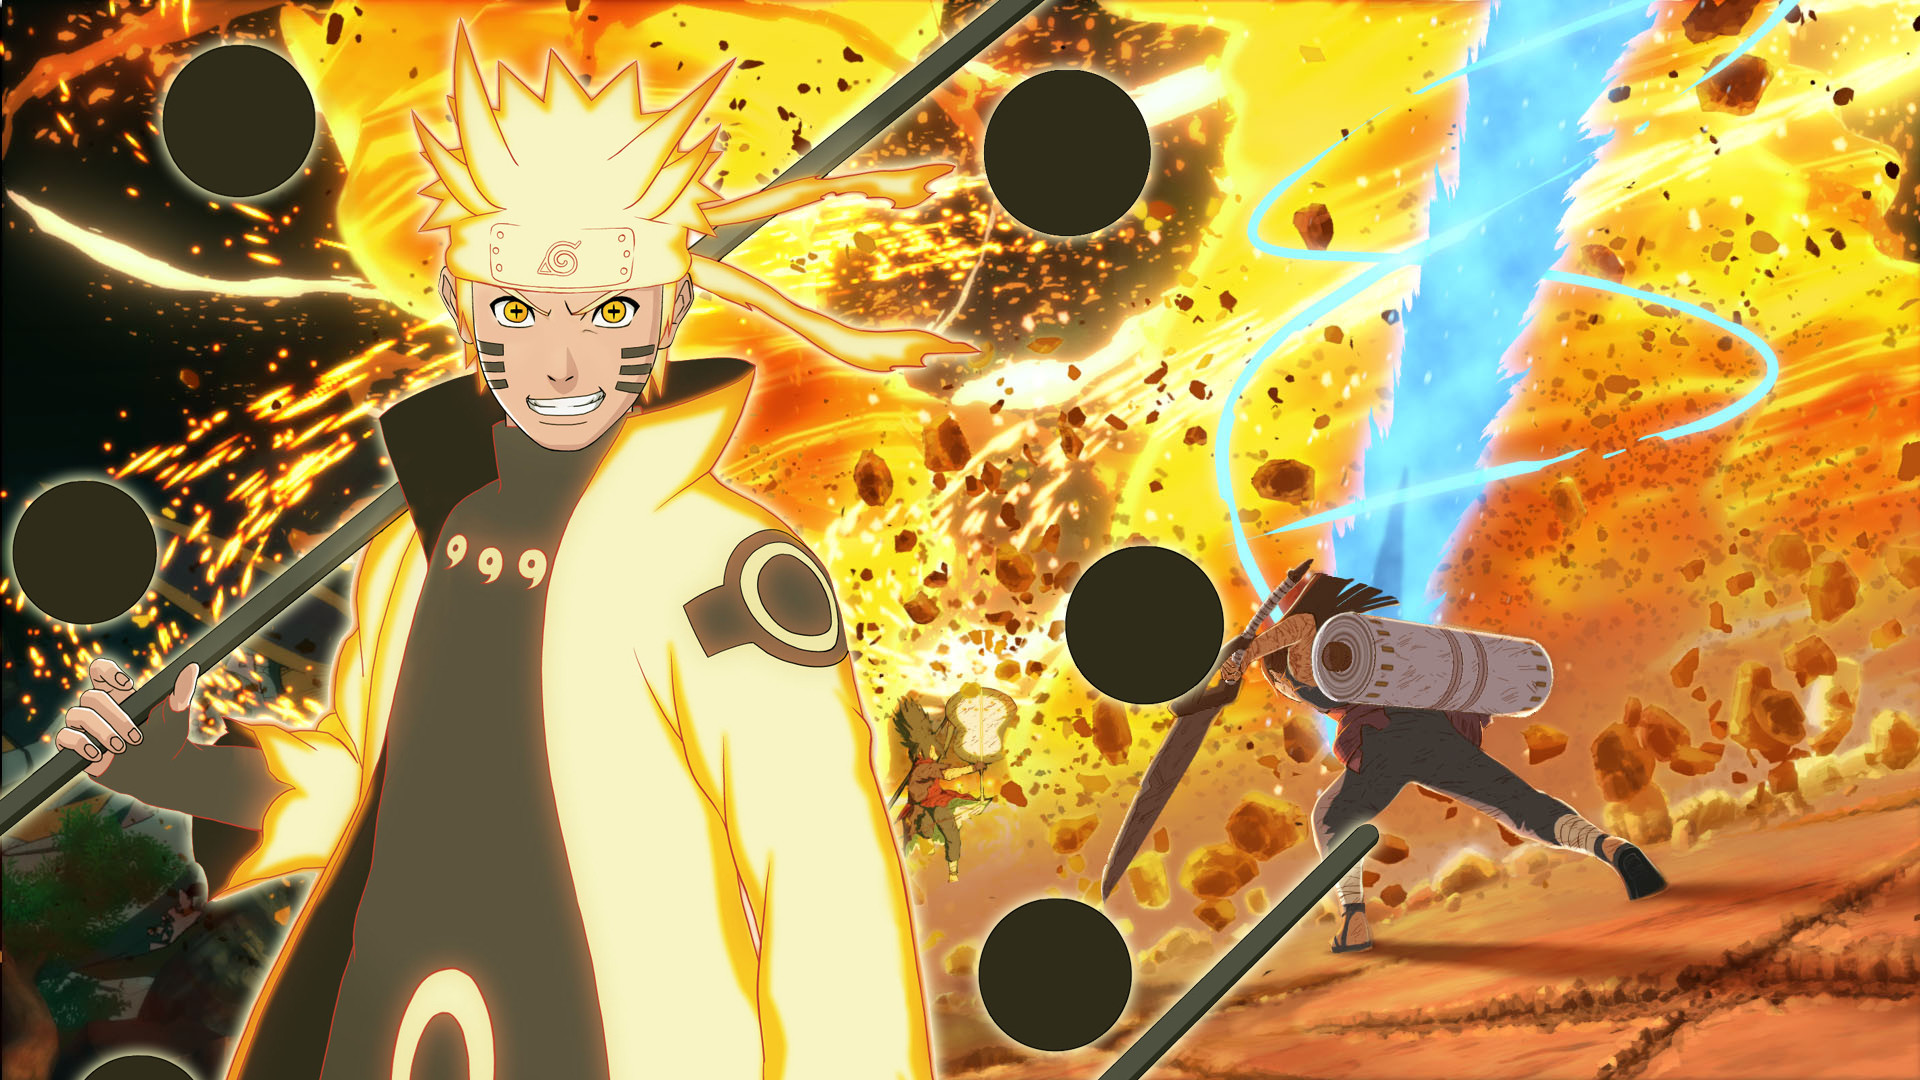 1920x1080 Naruto HD Wallpapers Backgrounds Wallpaper 1920×1080 Naruto Shippuden Wallpaper (44 Wallpapers)